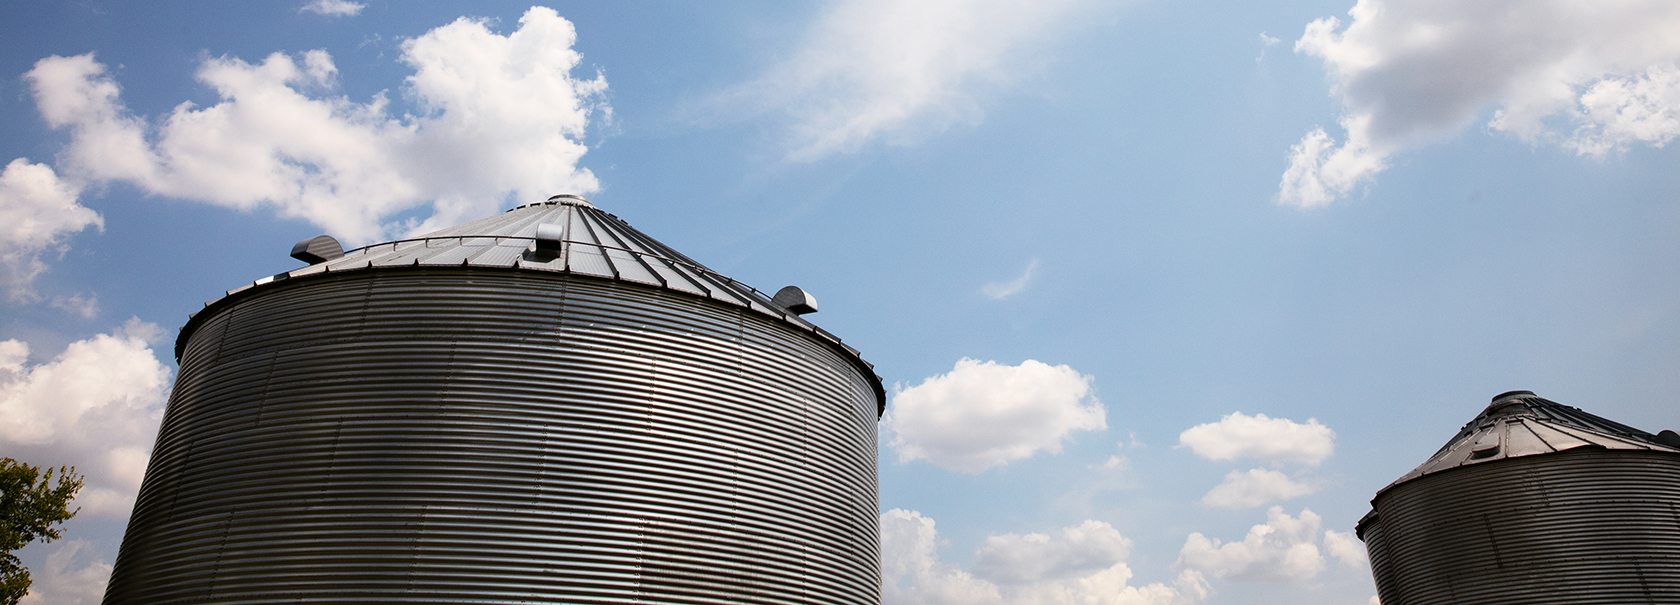 grain bins against blue skies